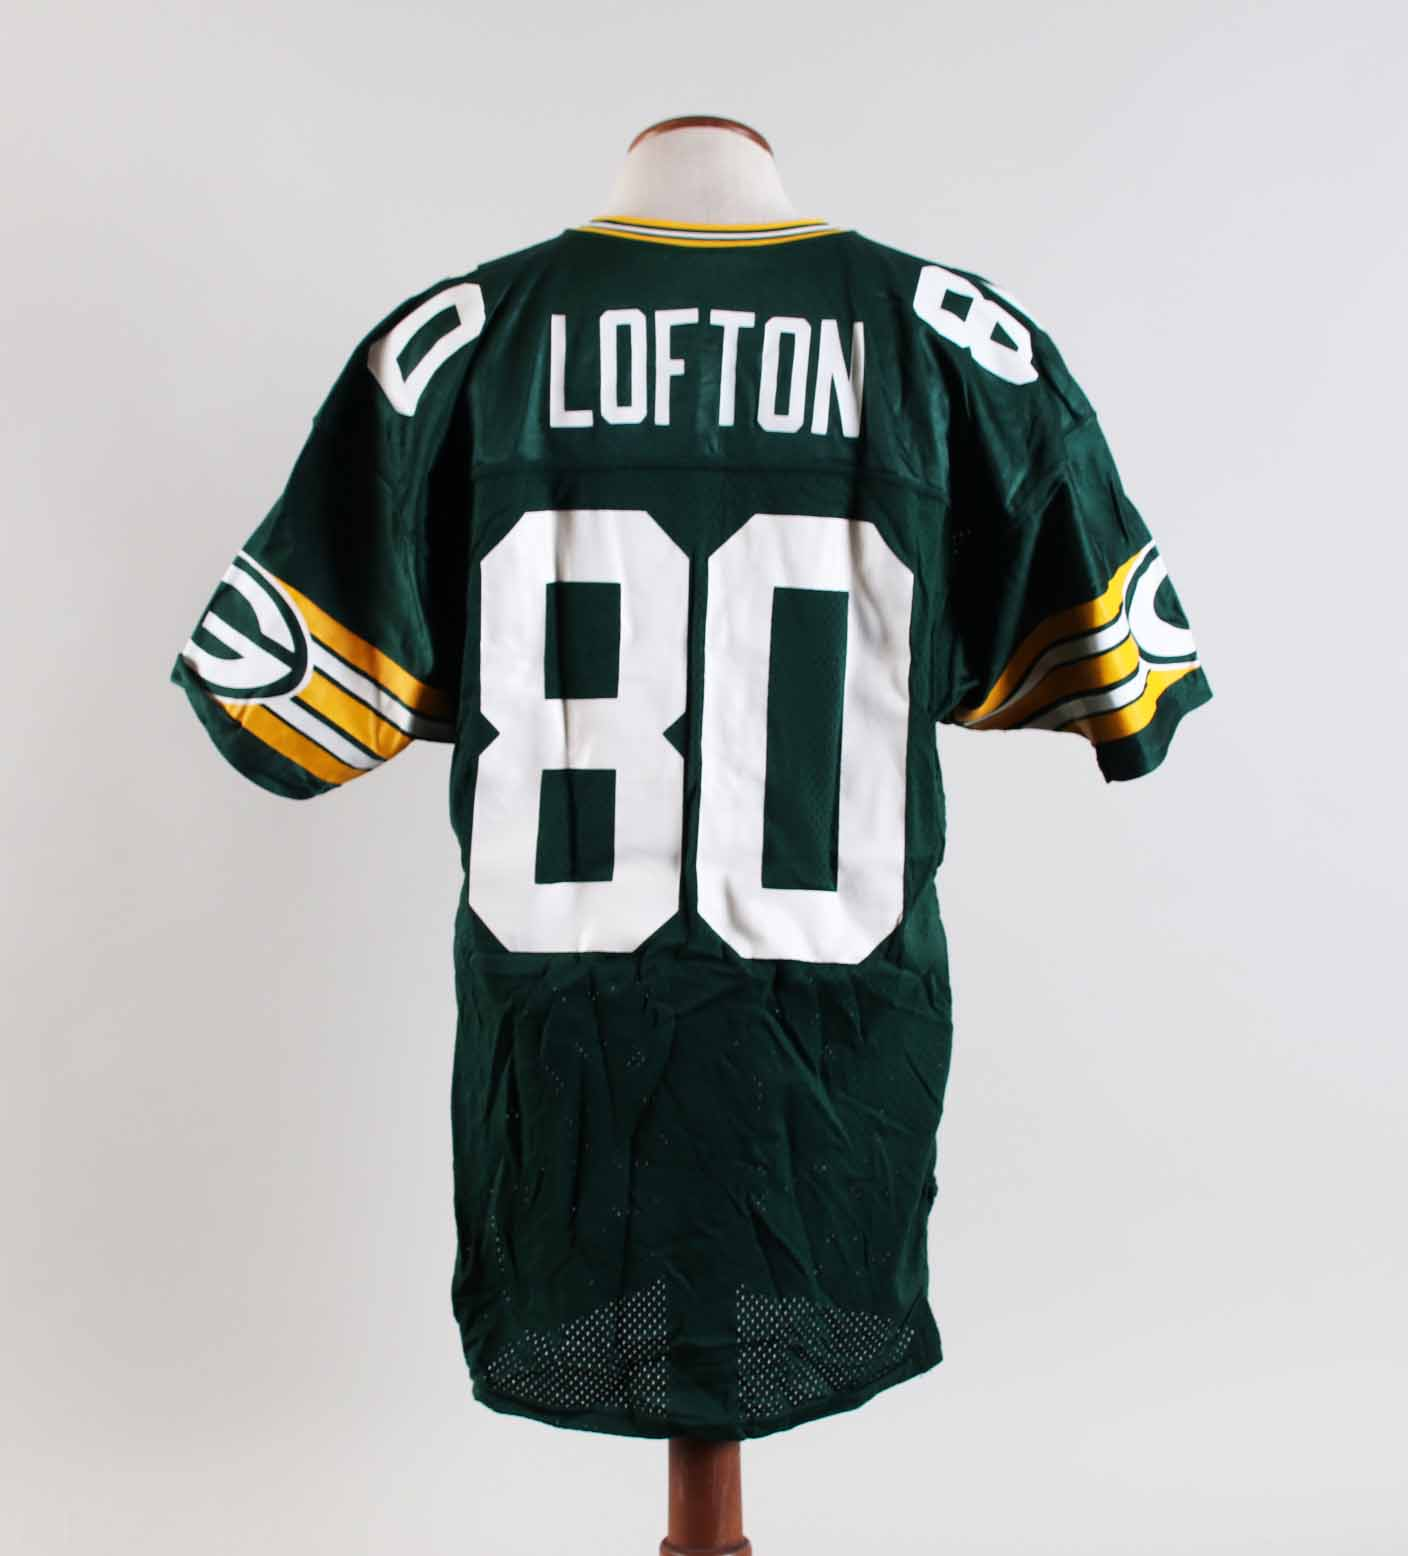 low priced 61a3a 23089 James Lofton Game-Worn Jersey Packers – COA 100% Authentic ...